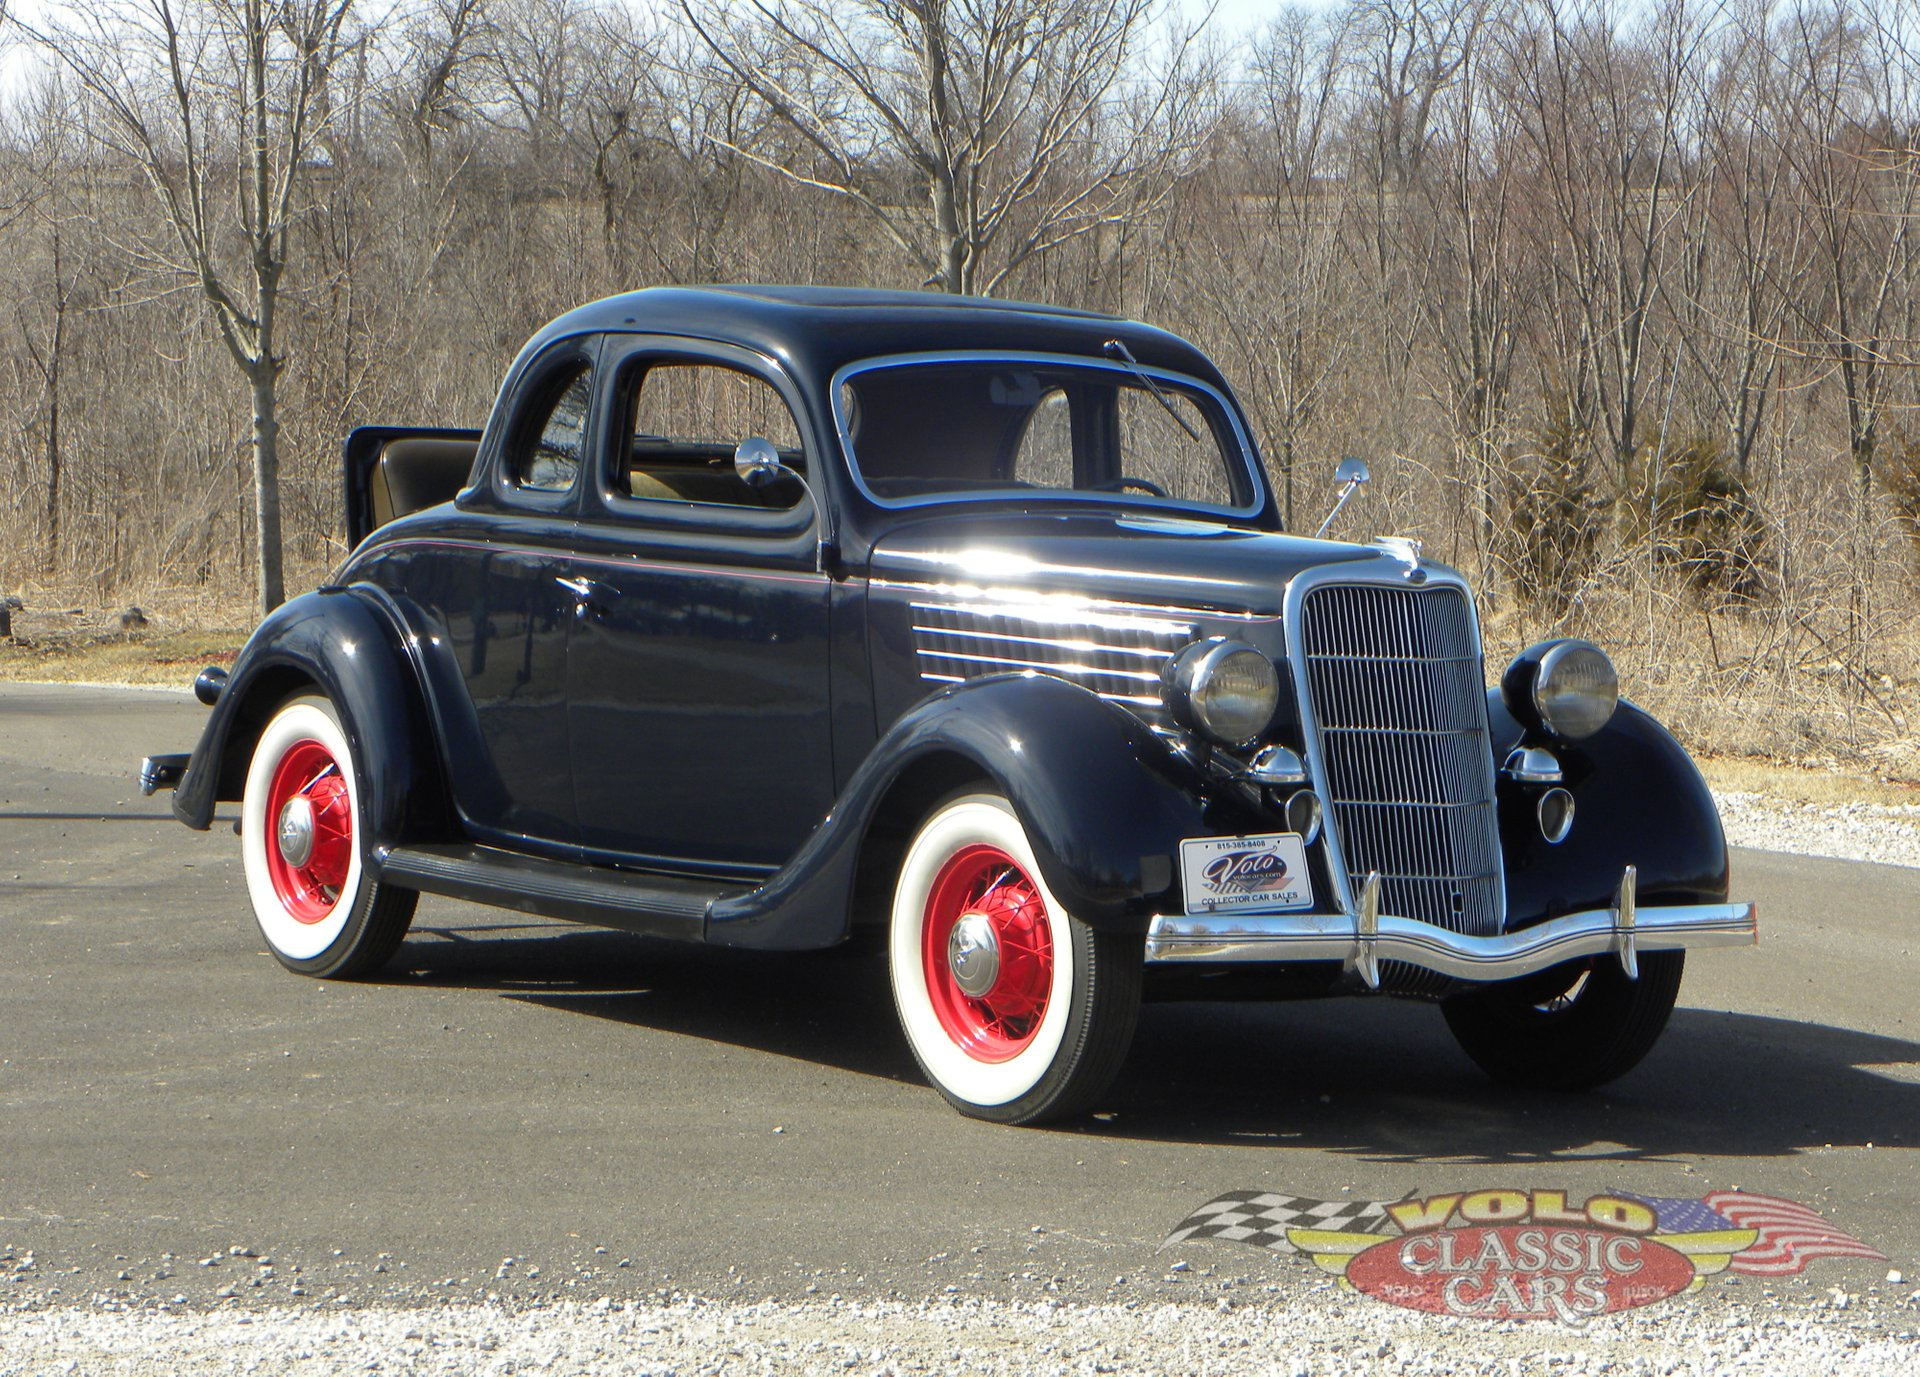 1935 ford model 48 deluxe rumble seat coupe